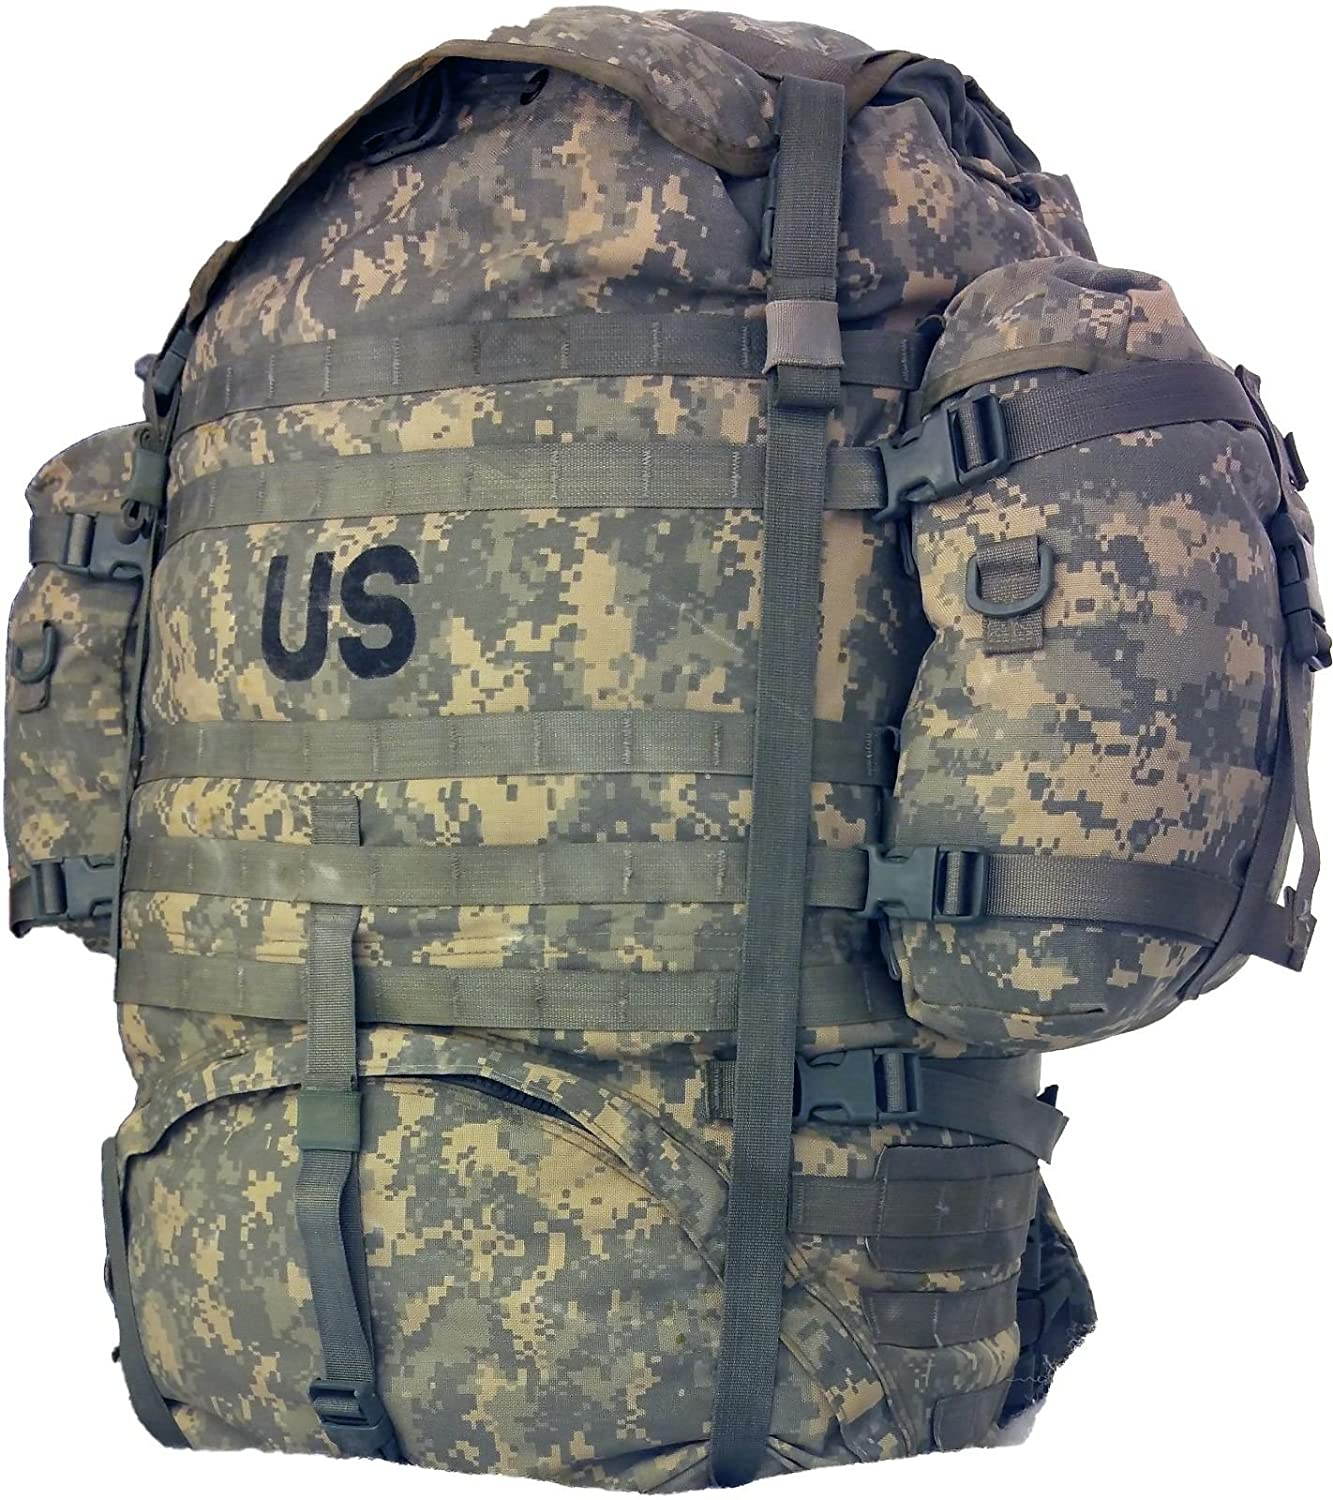 US Military Issue MOLLE II Large Rucksack Rifleman Field Pack Complete Set UP Genuine U.S. Military Issue